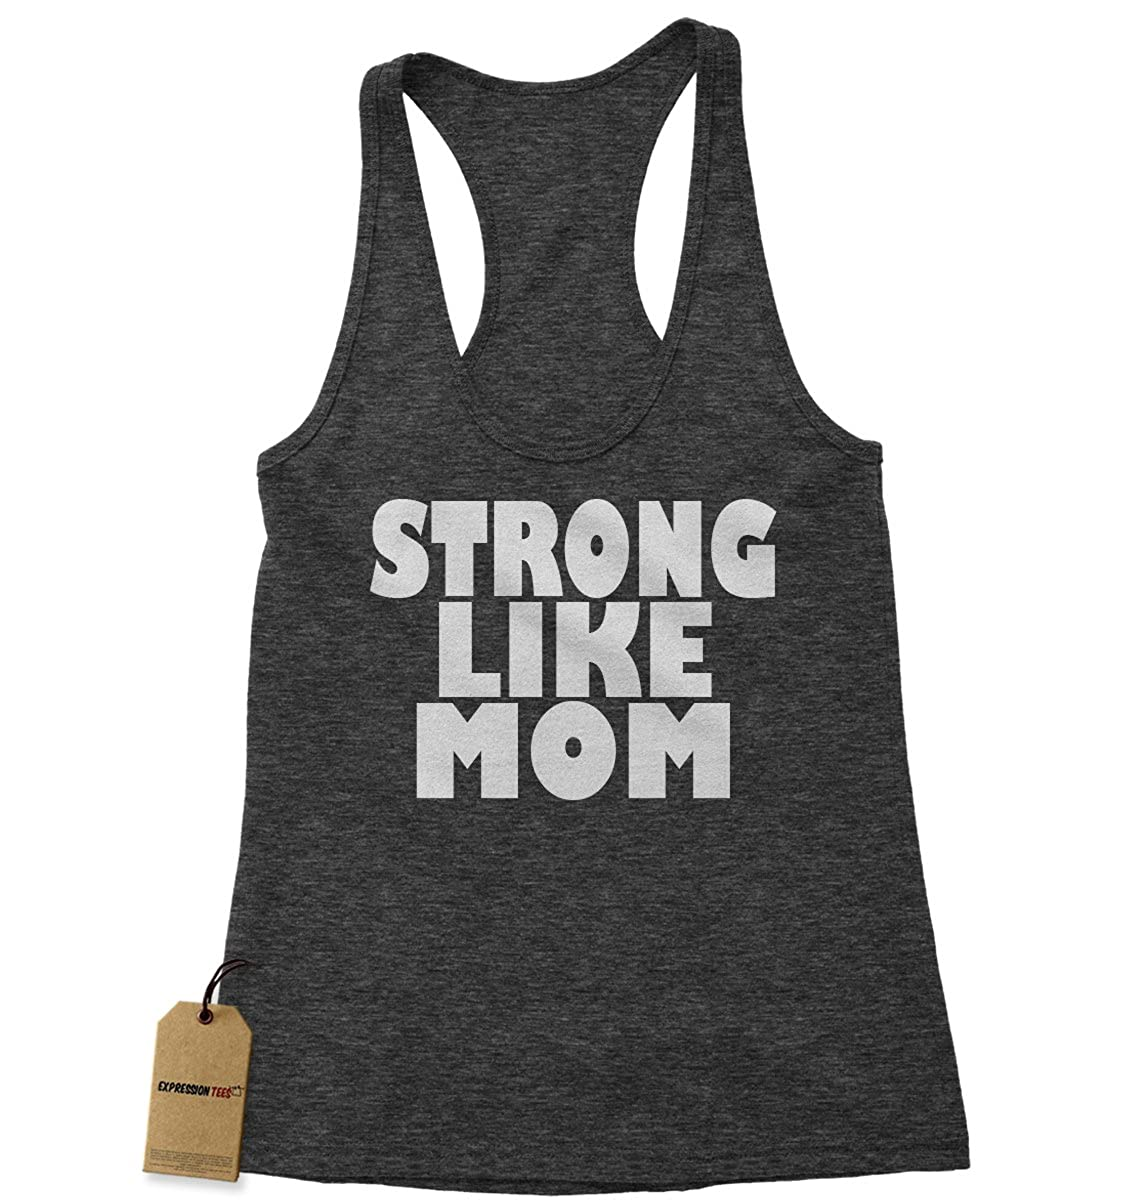 Expression Tees Strong Like Mom Triblend Racerback Tank Top for Women 1795-R